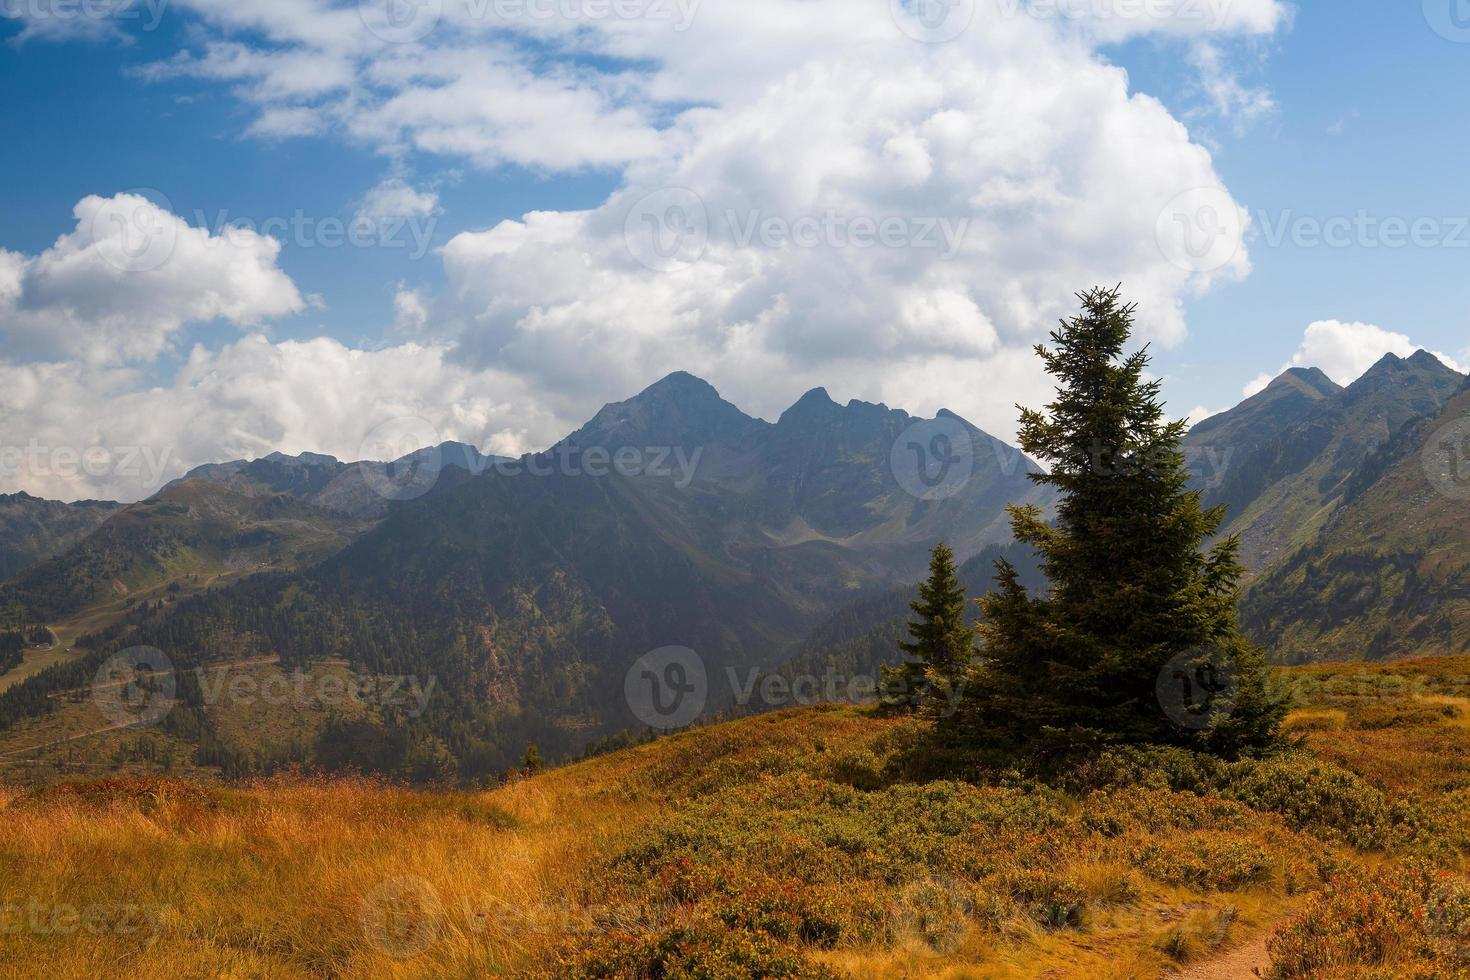 Stunning landscape in the Schladming photo